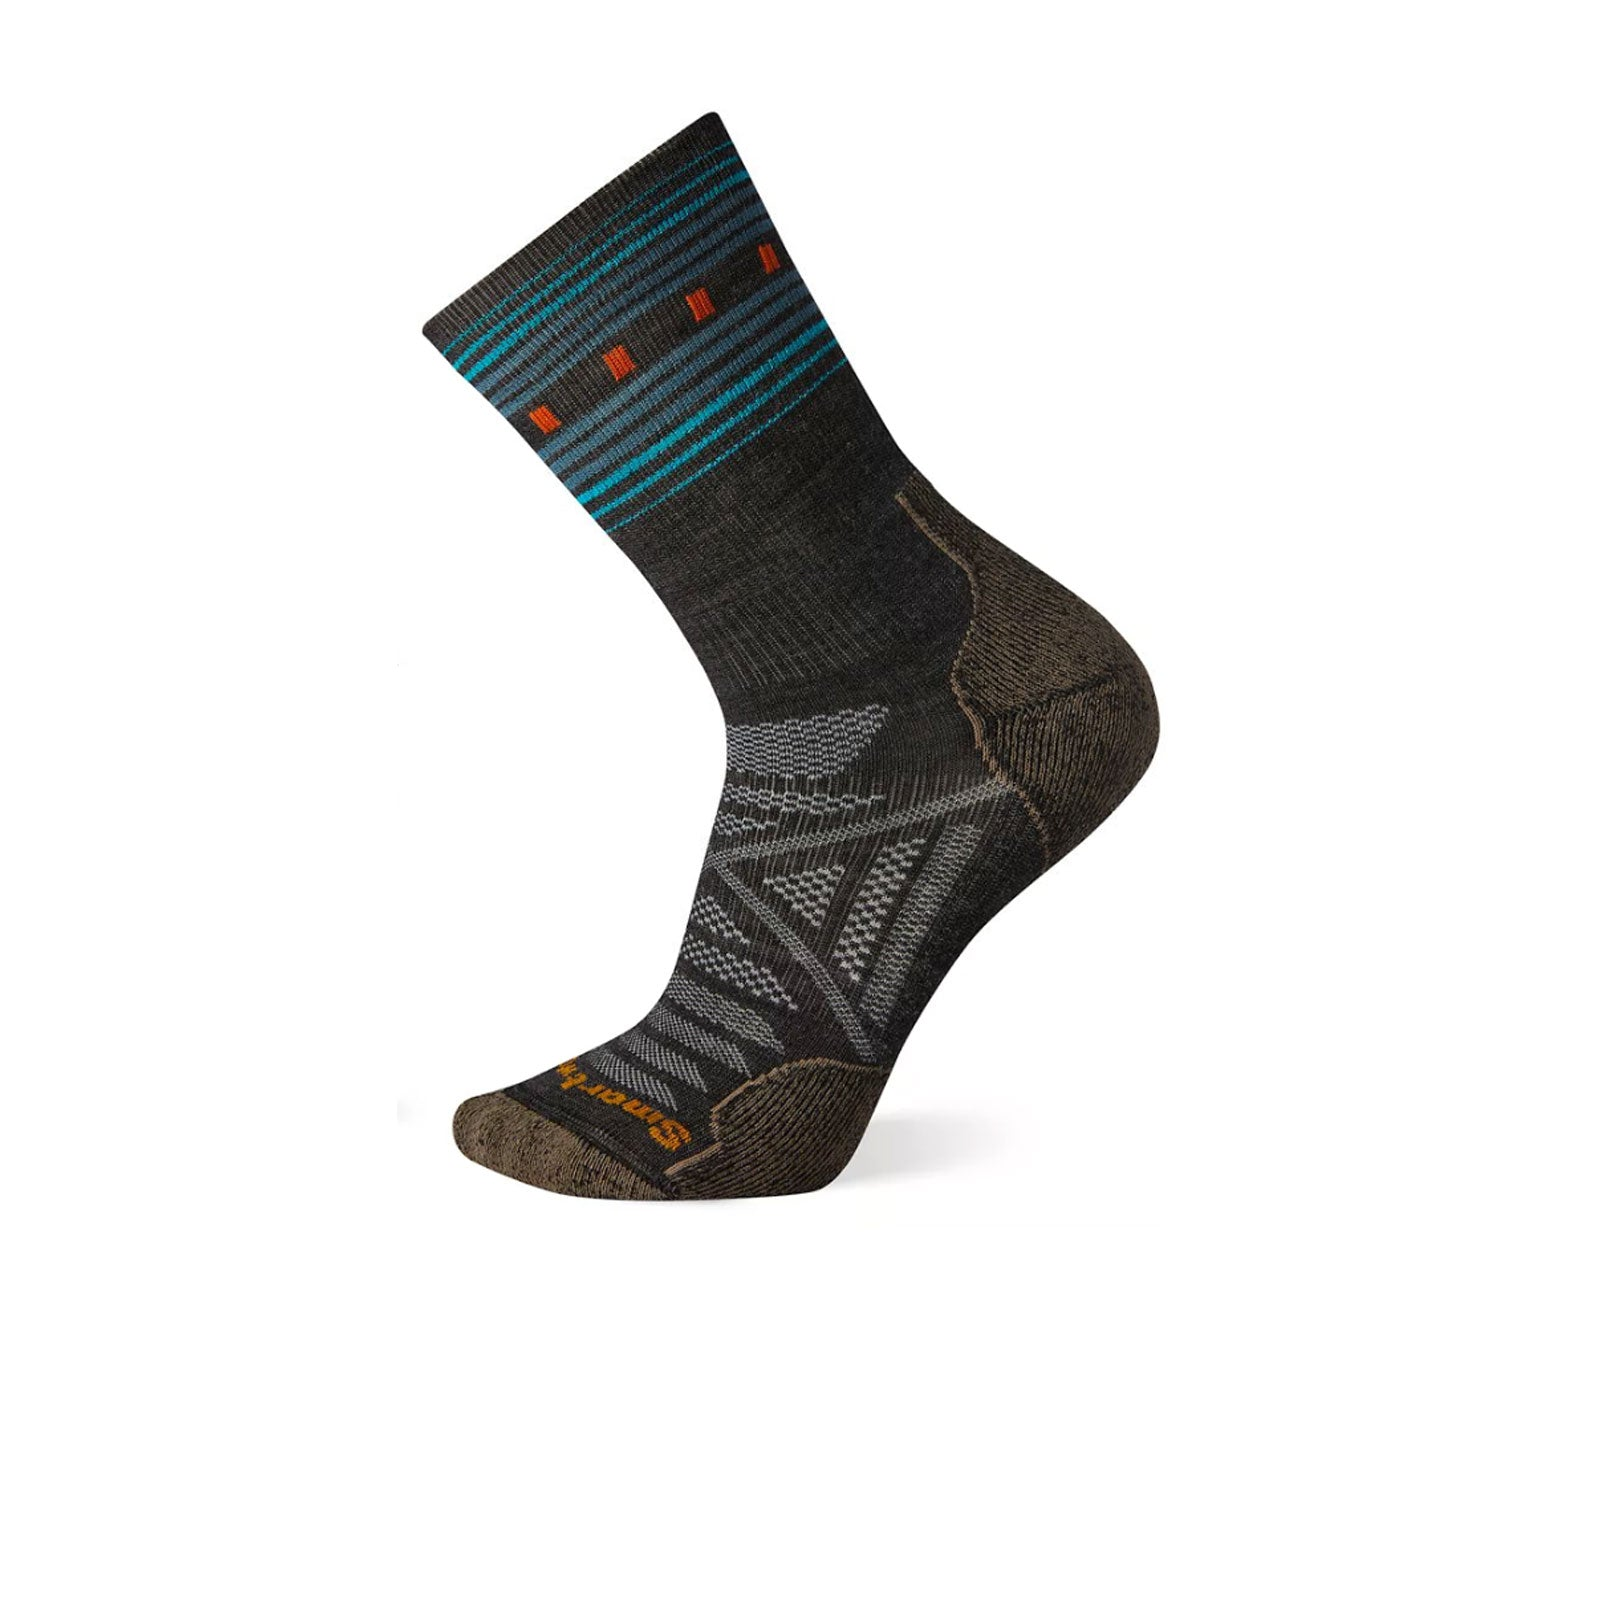 Smartwool PhD Outdoor Light Pattern Crew (Men) - Charcoal Socks - Perf - Crew - The Heel Shoe Fitters